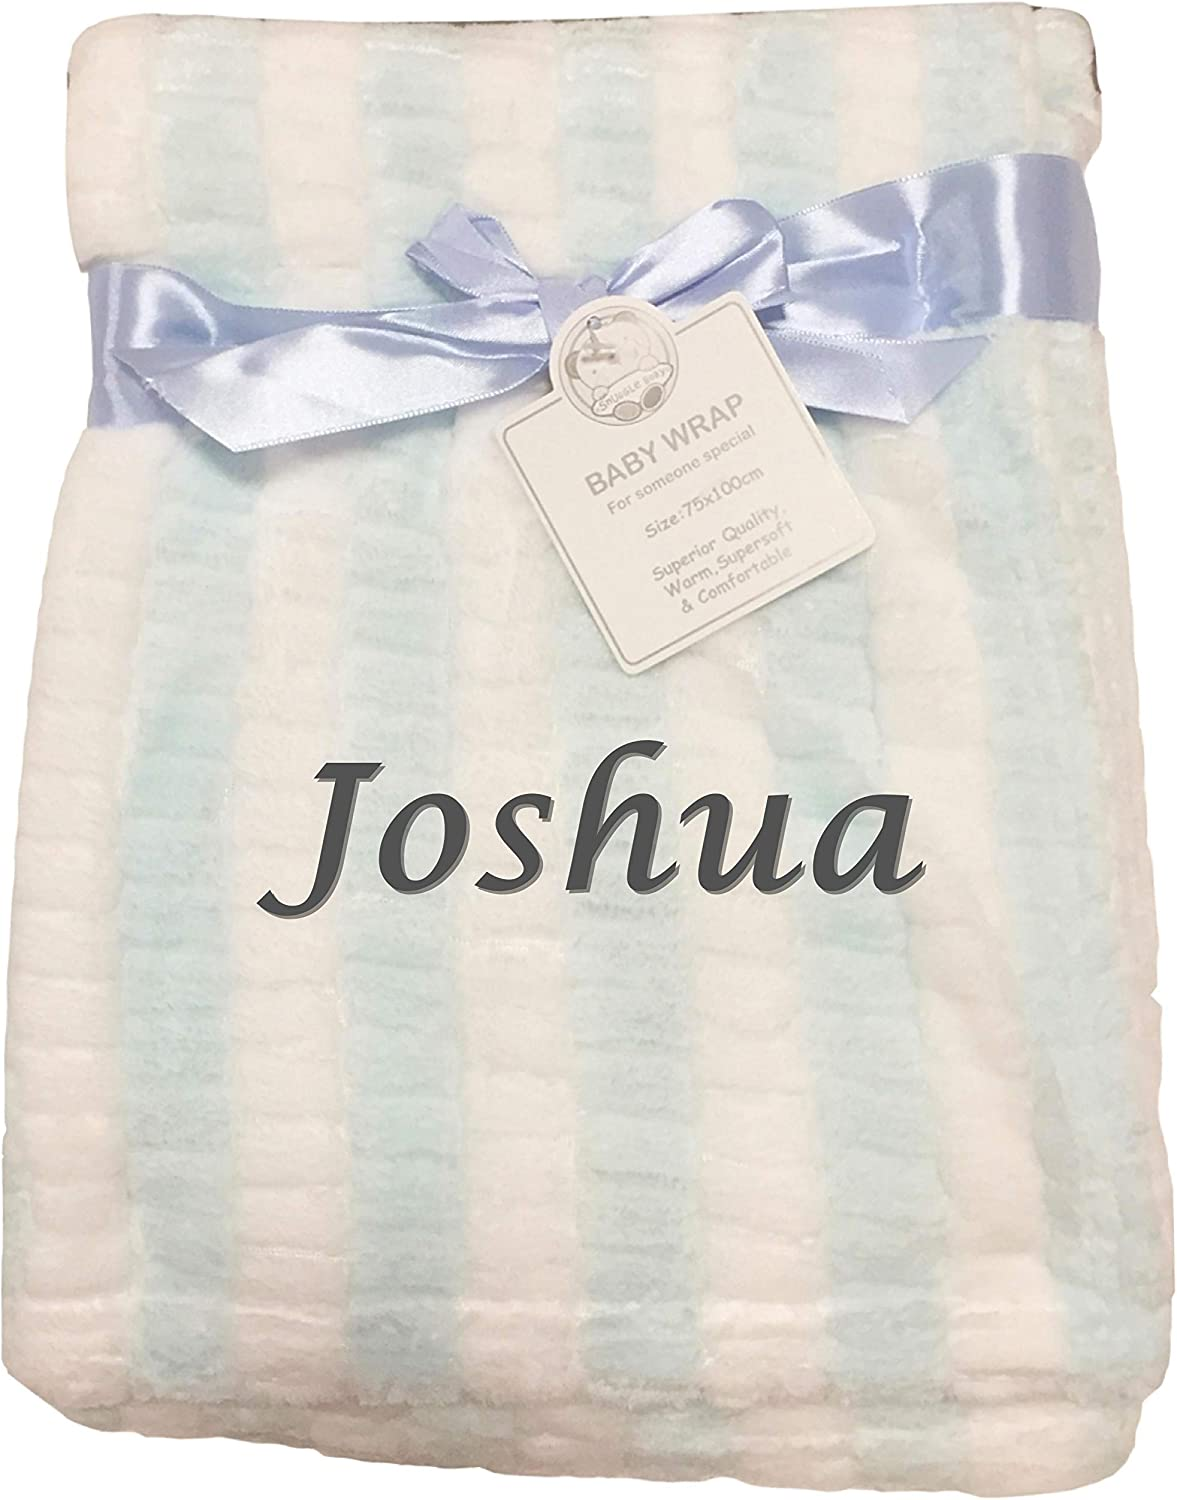 Baby Boy Girl Personalised Blanket Embroidered Name Pink Mint Mint and White Striped